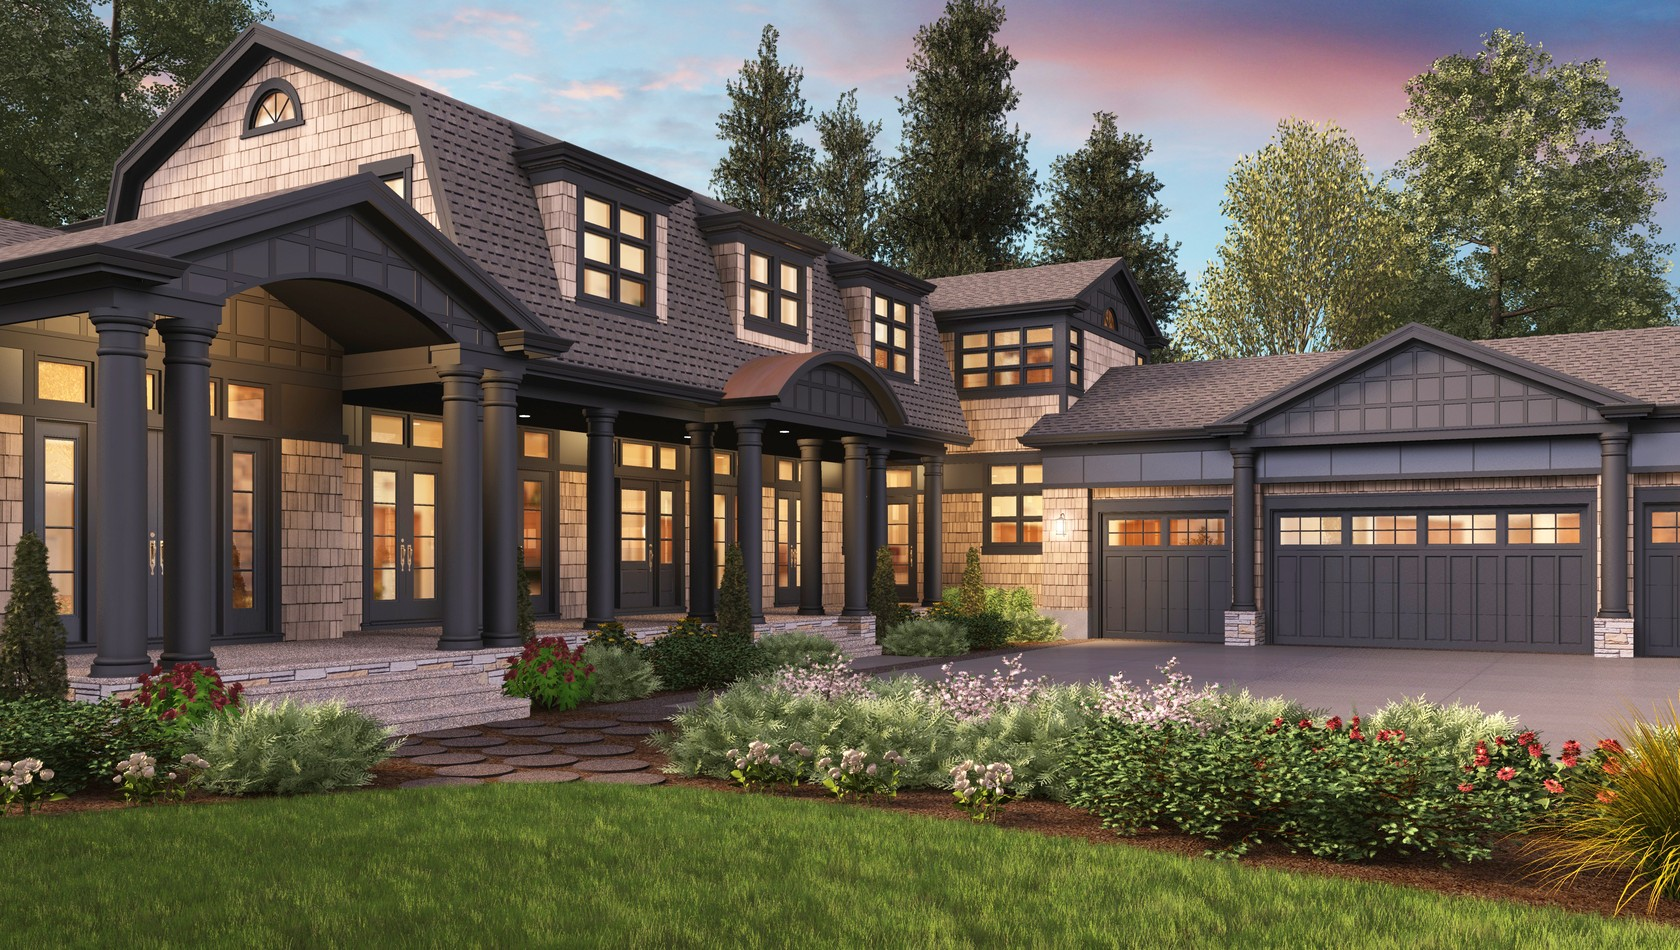 Main image for house plan 2472: The Chatham